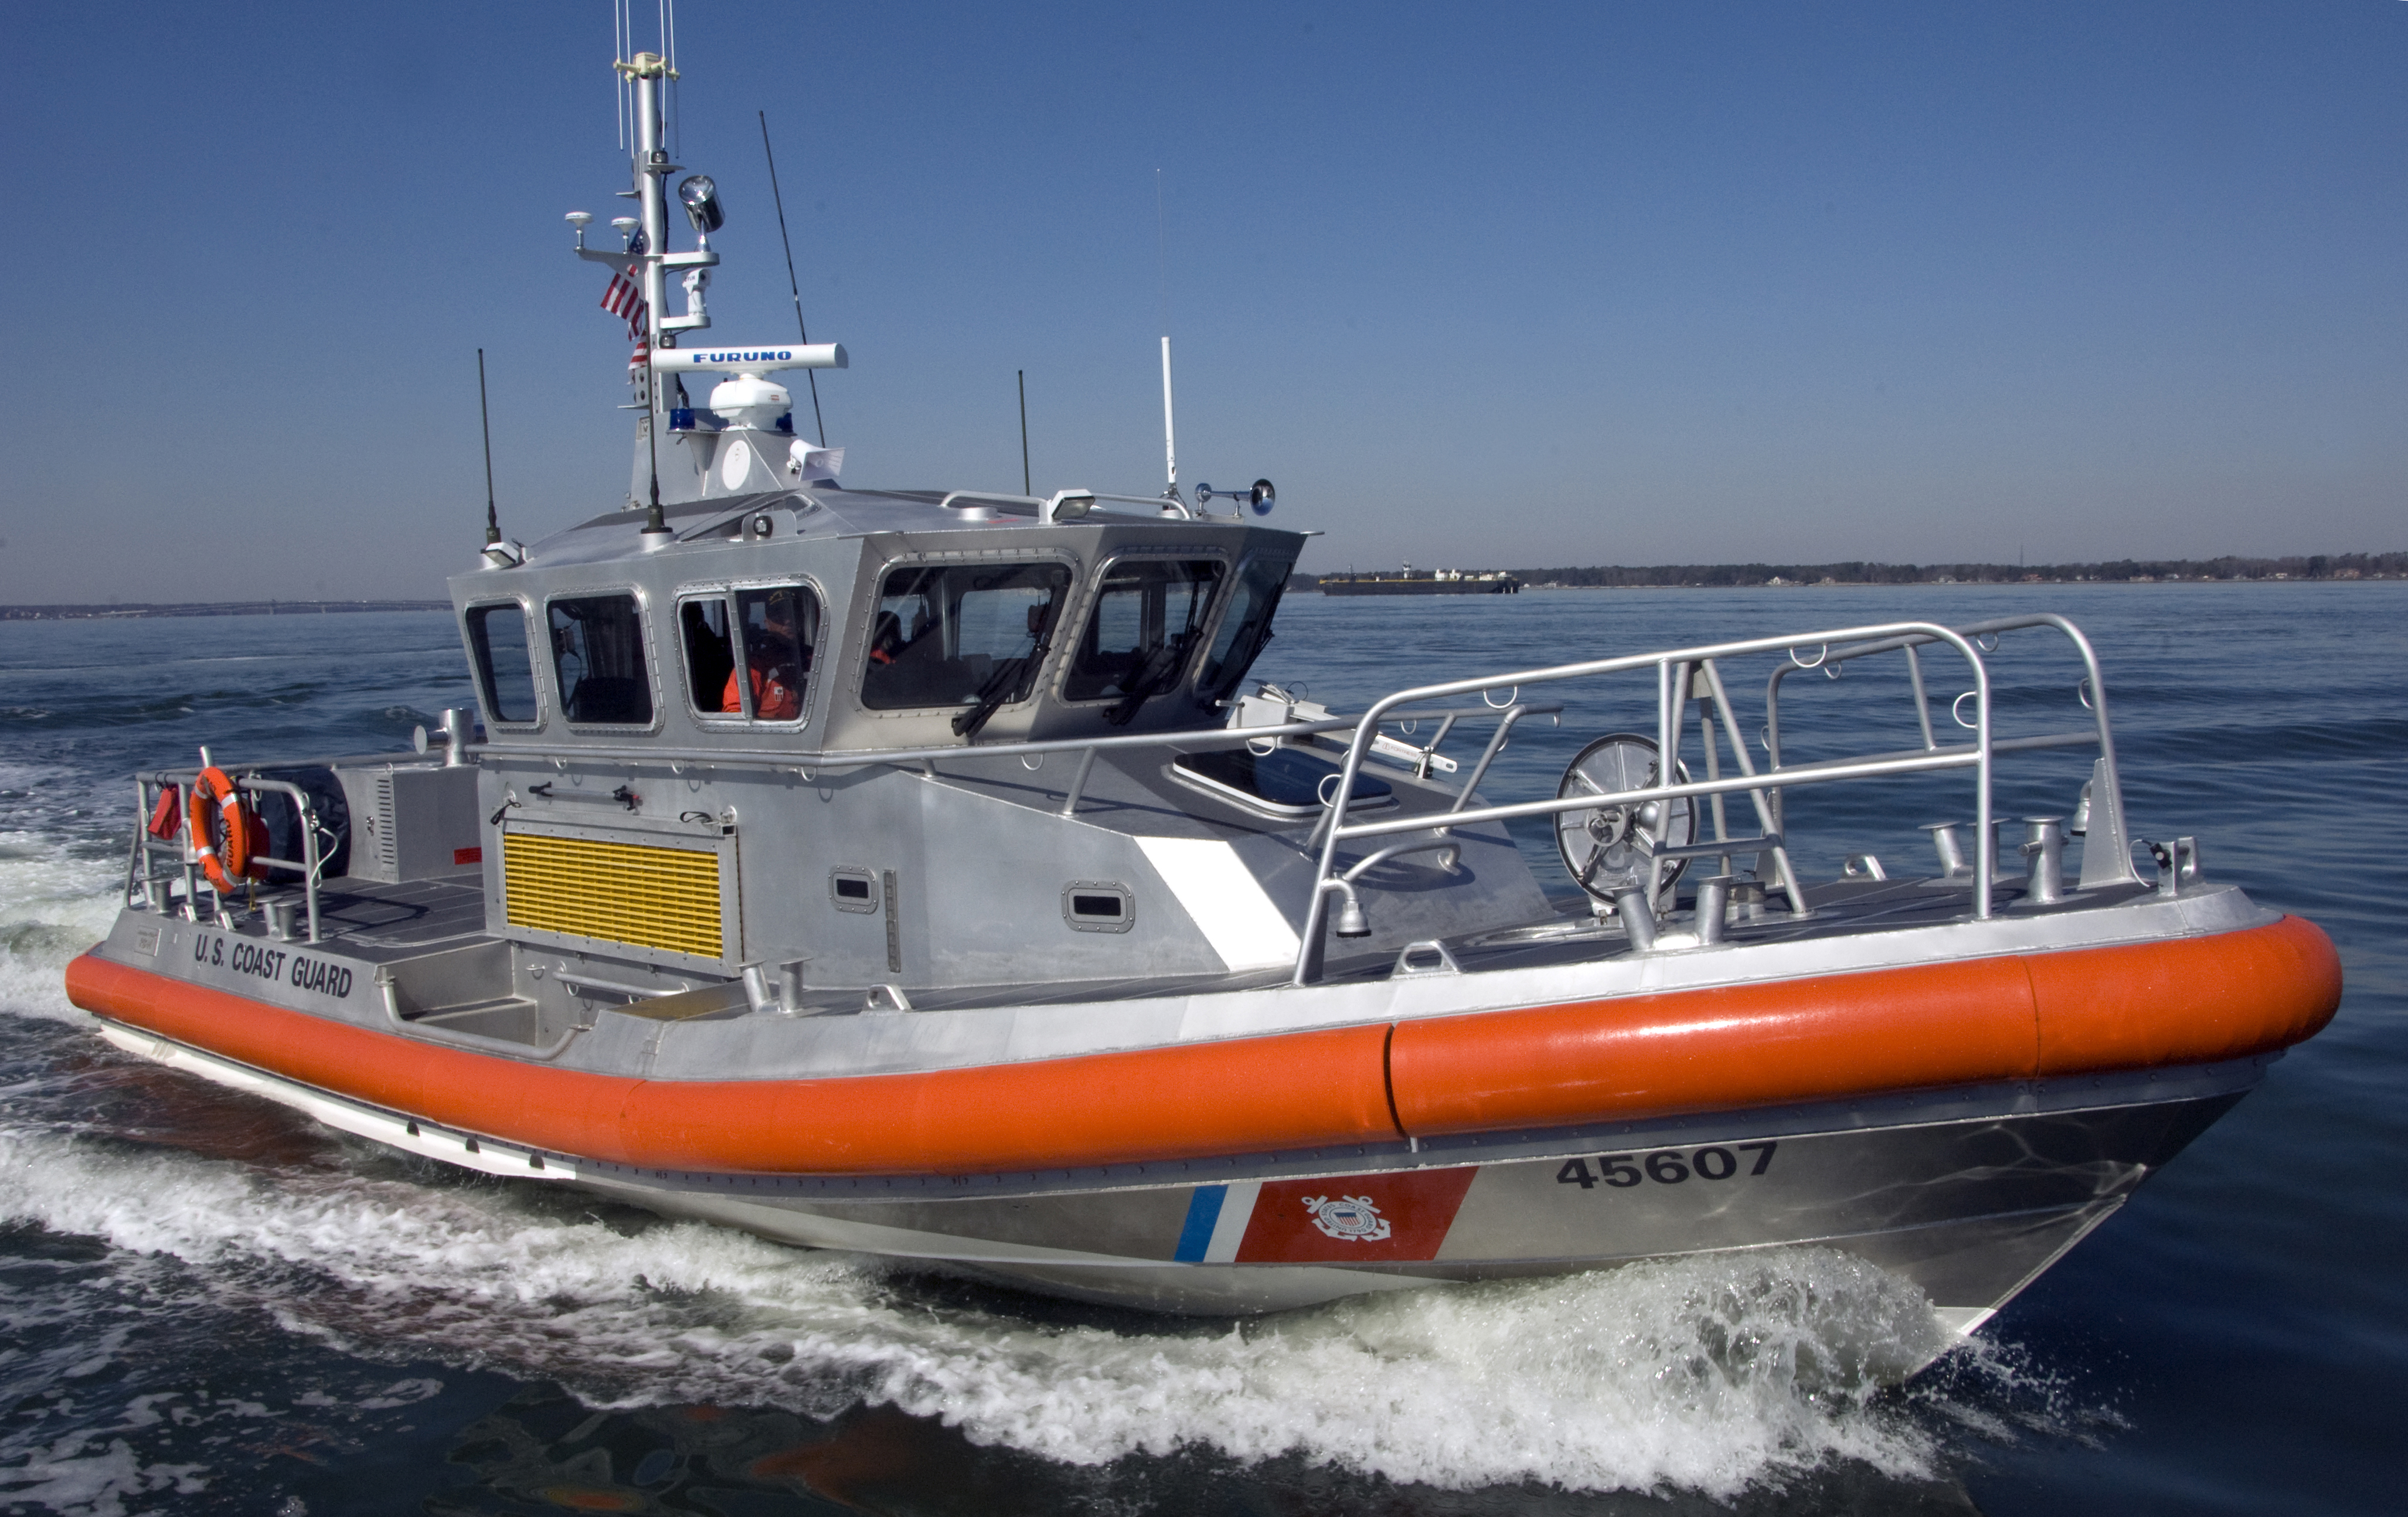 Description USCG response boat medium 45607 Yorktown.jpg